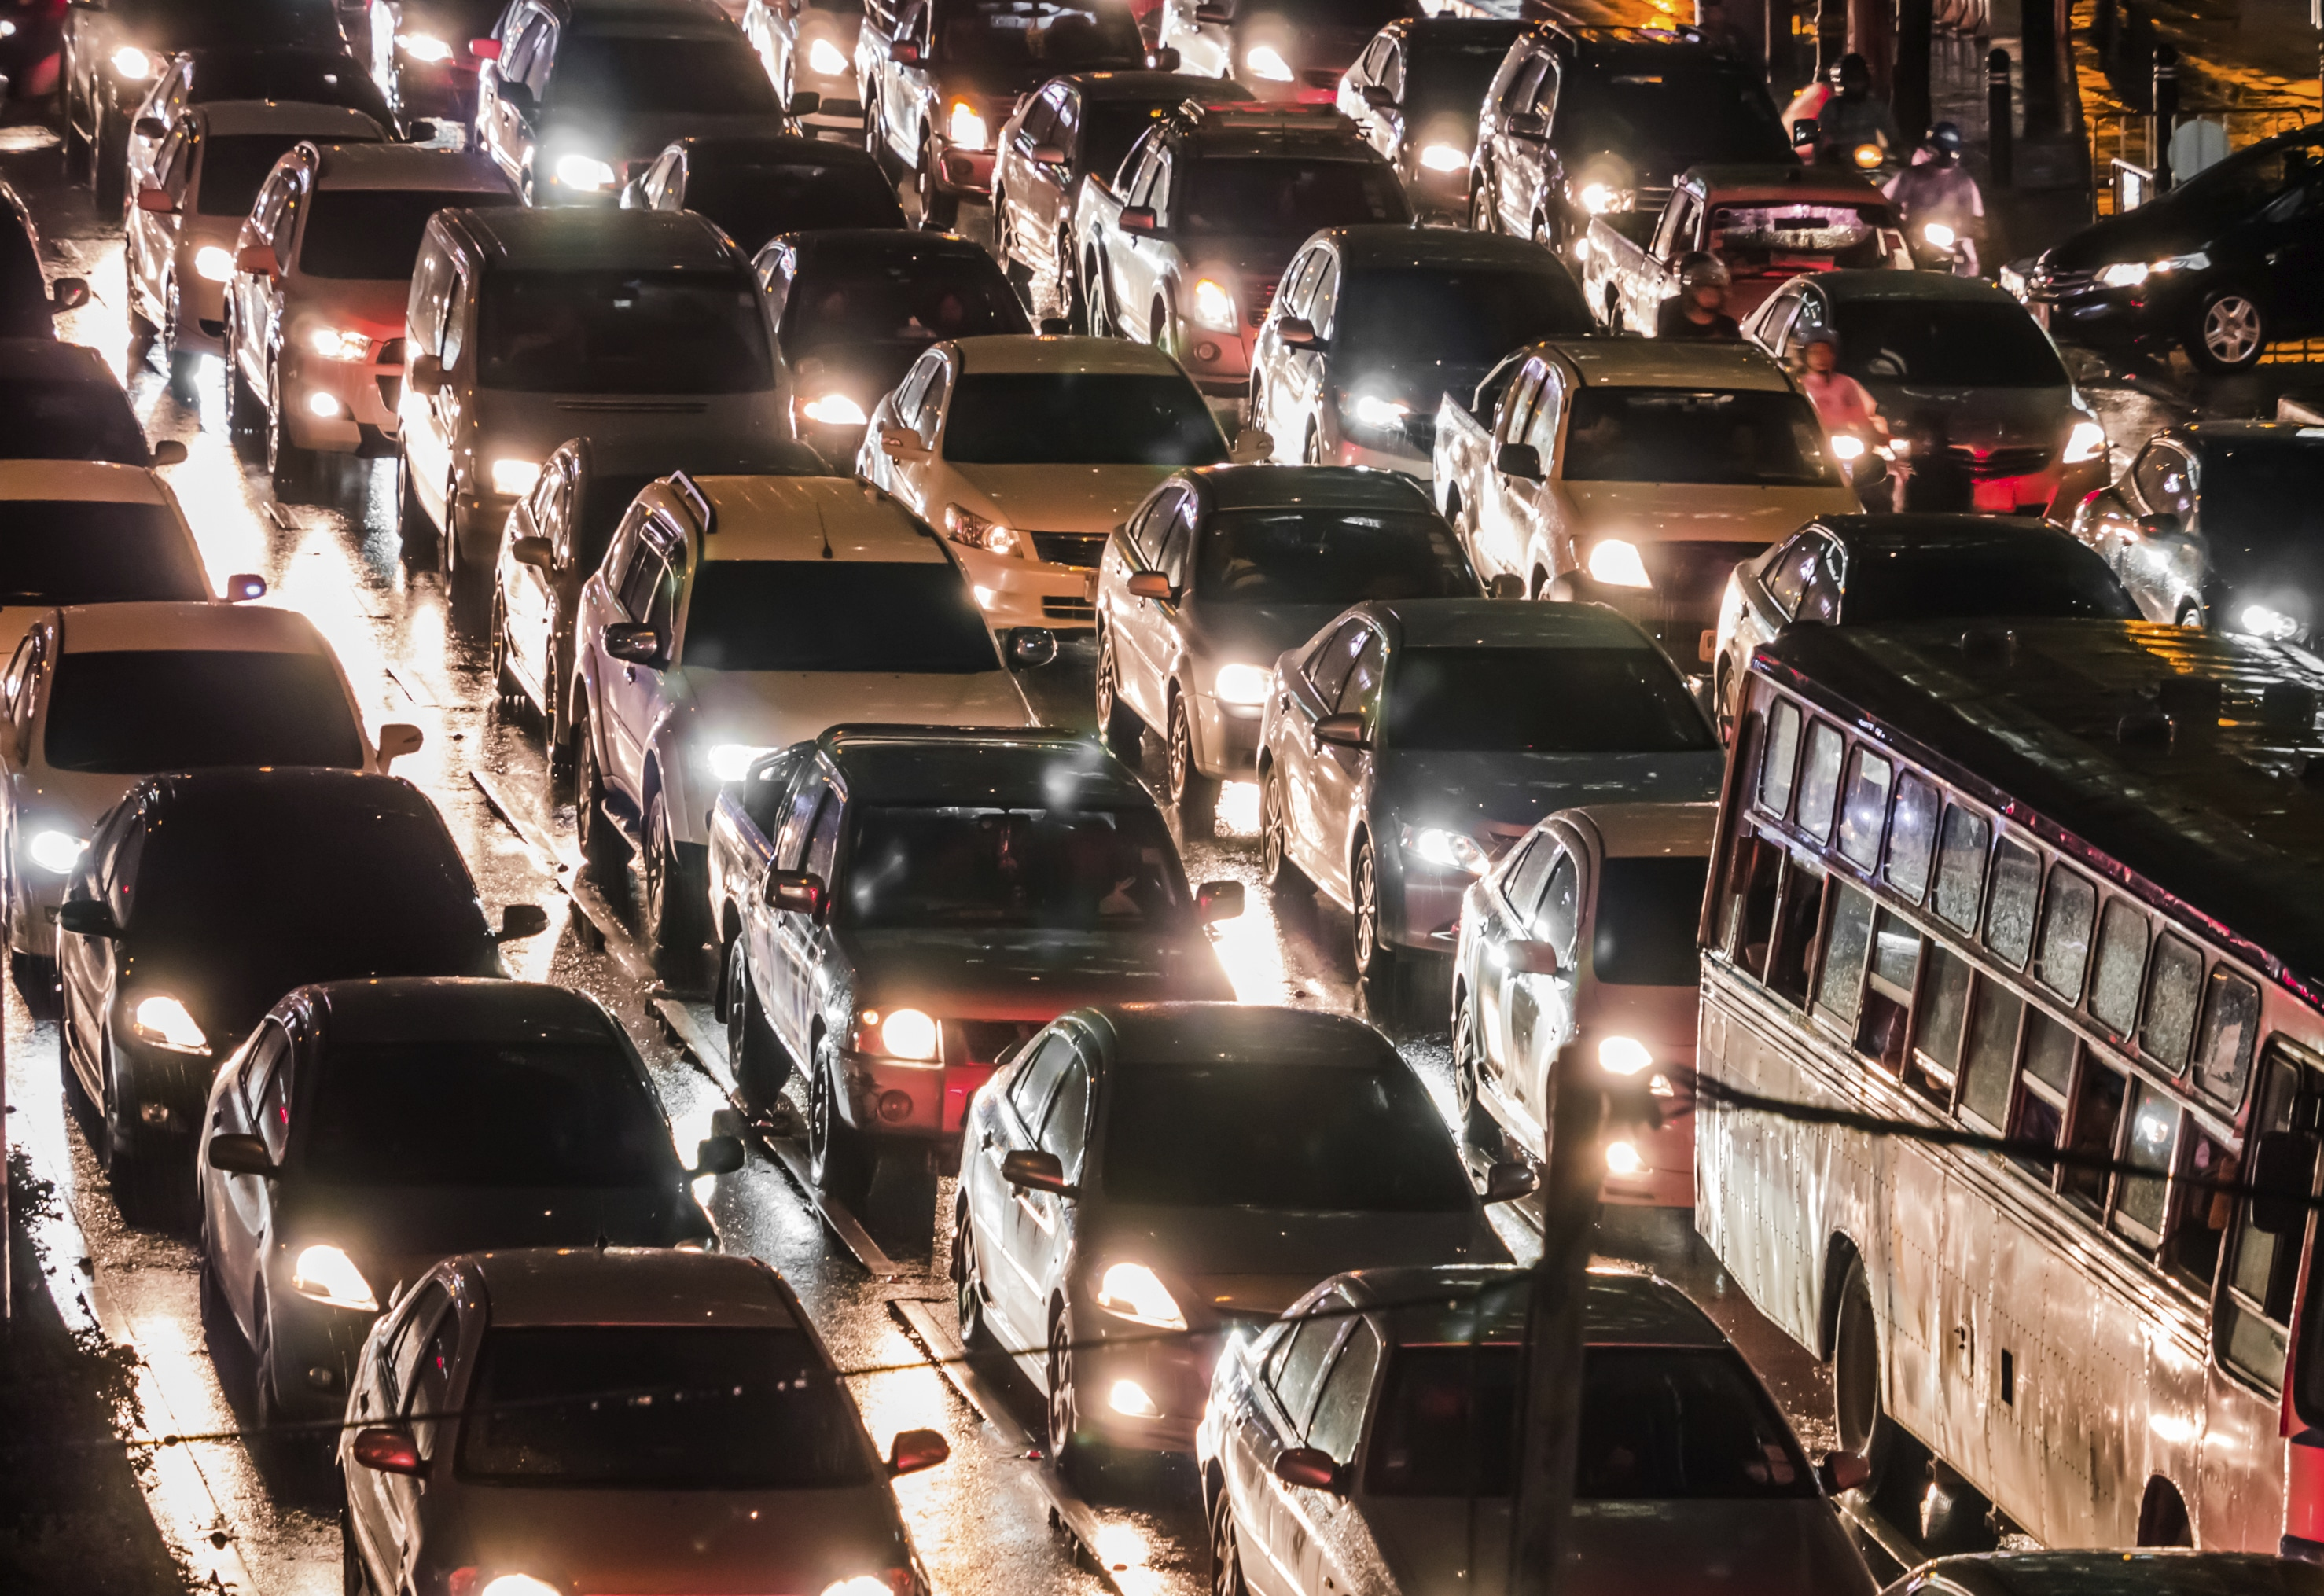 Digital transformation: A crowded street full of cars in India.